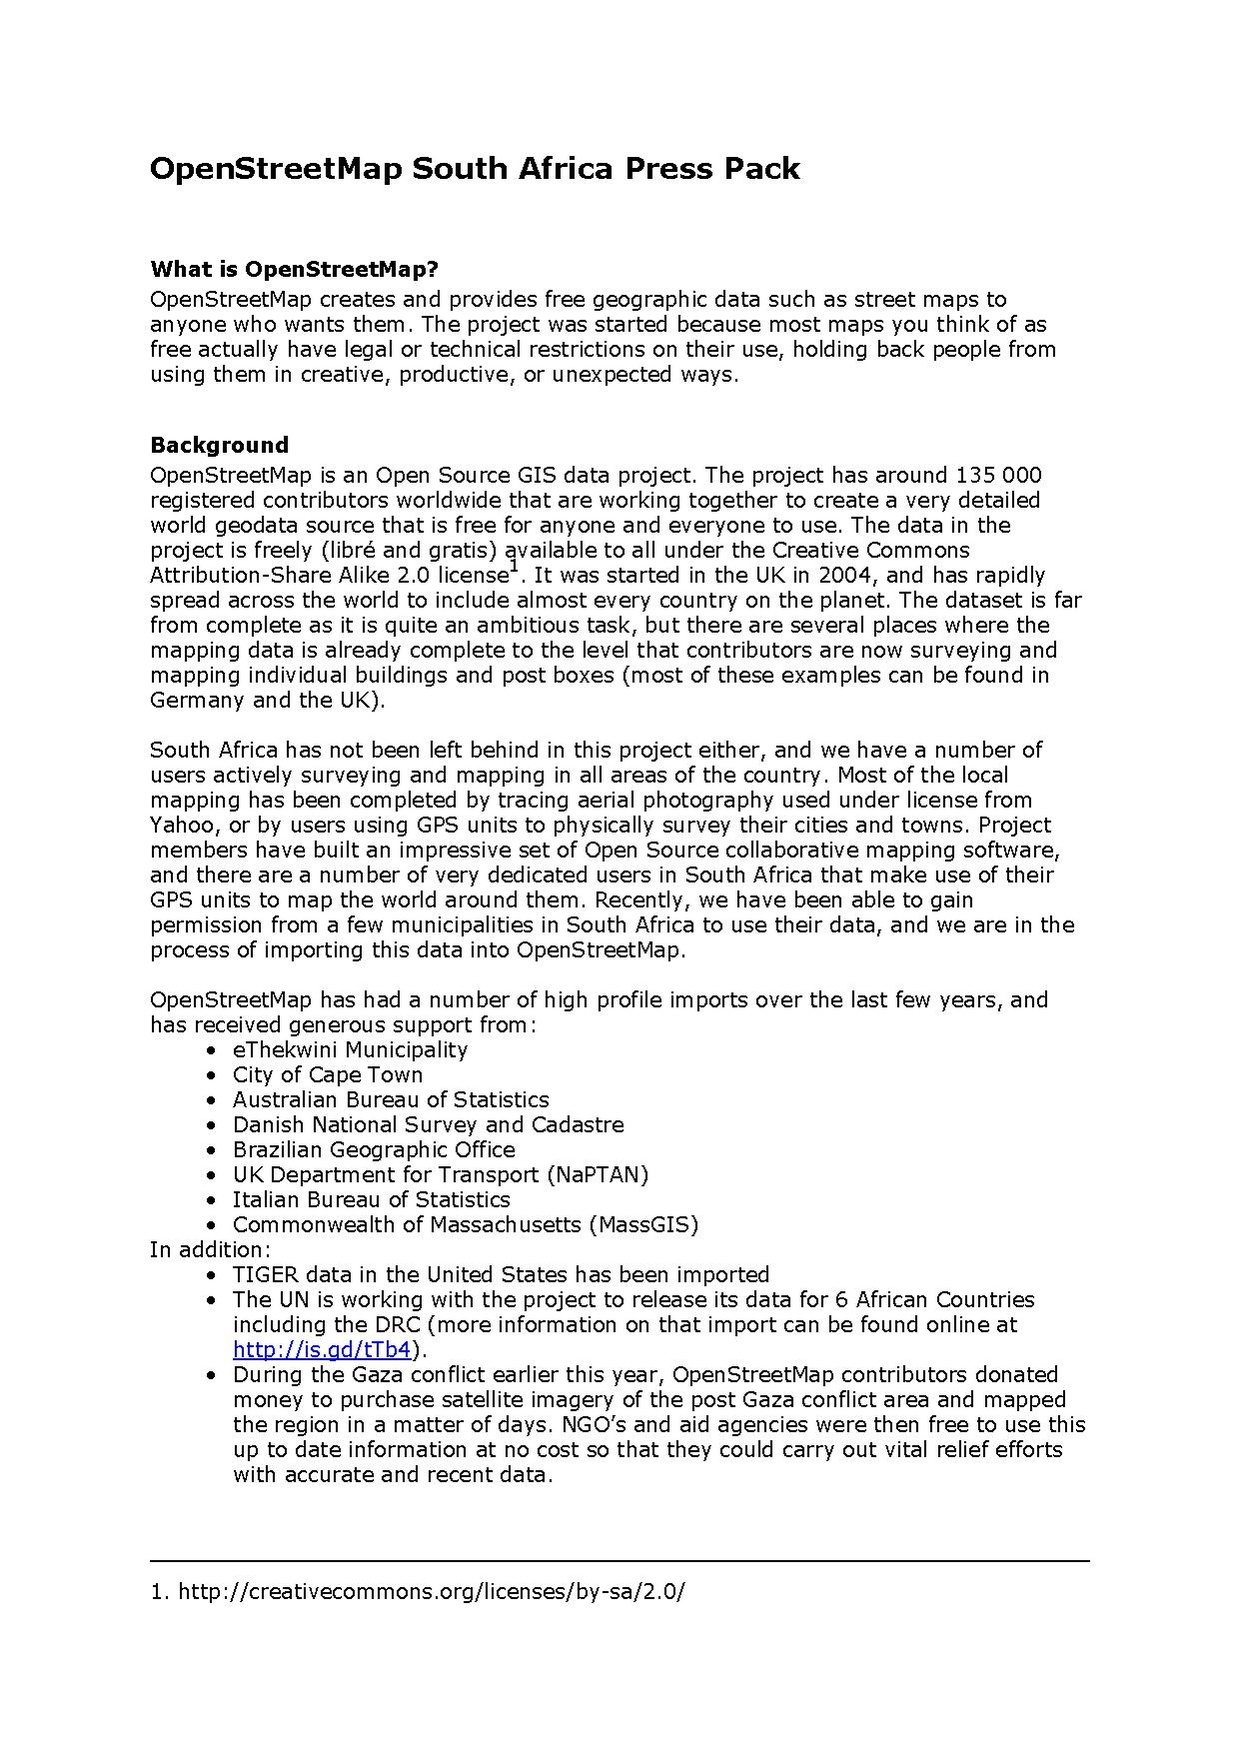 File:OSM South Africa Press Pack.pdf   OpenStreetMap Wiki